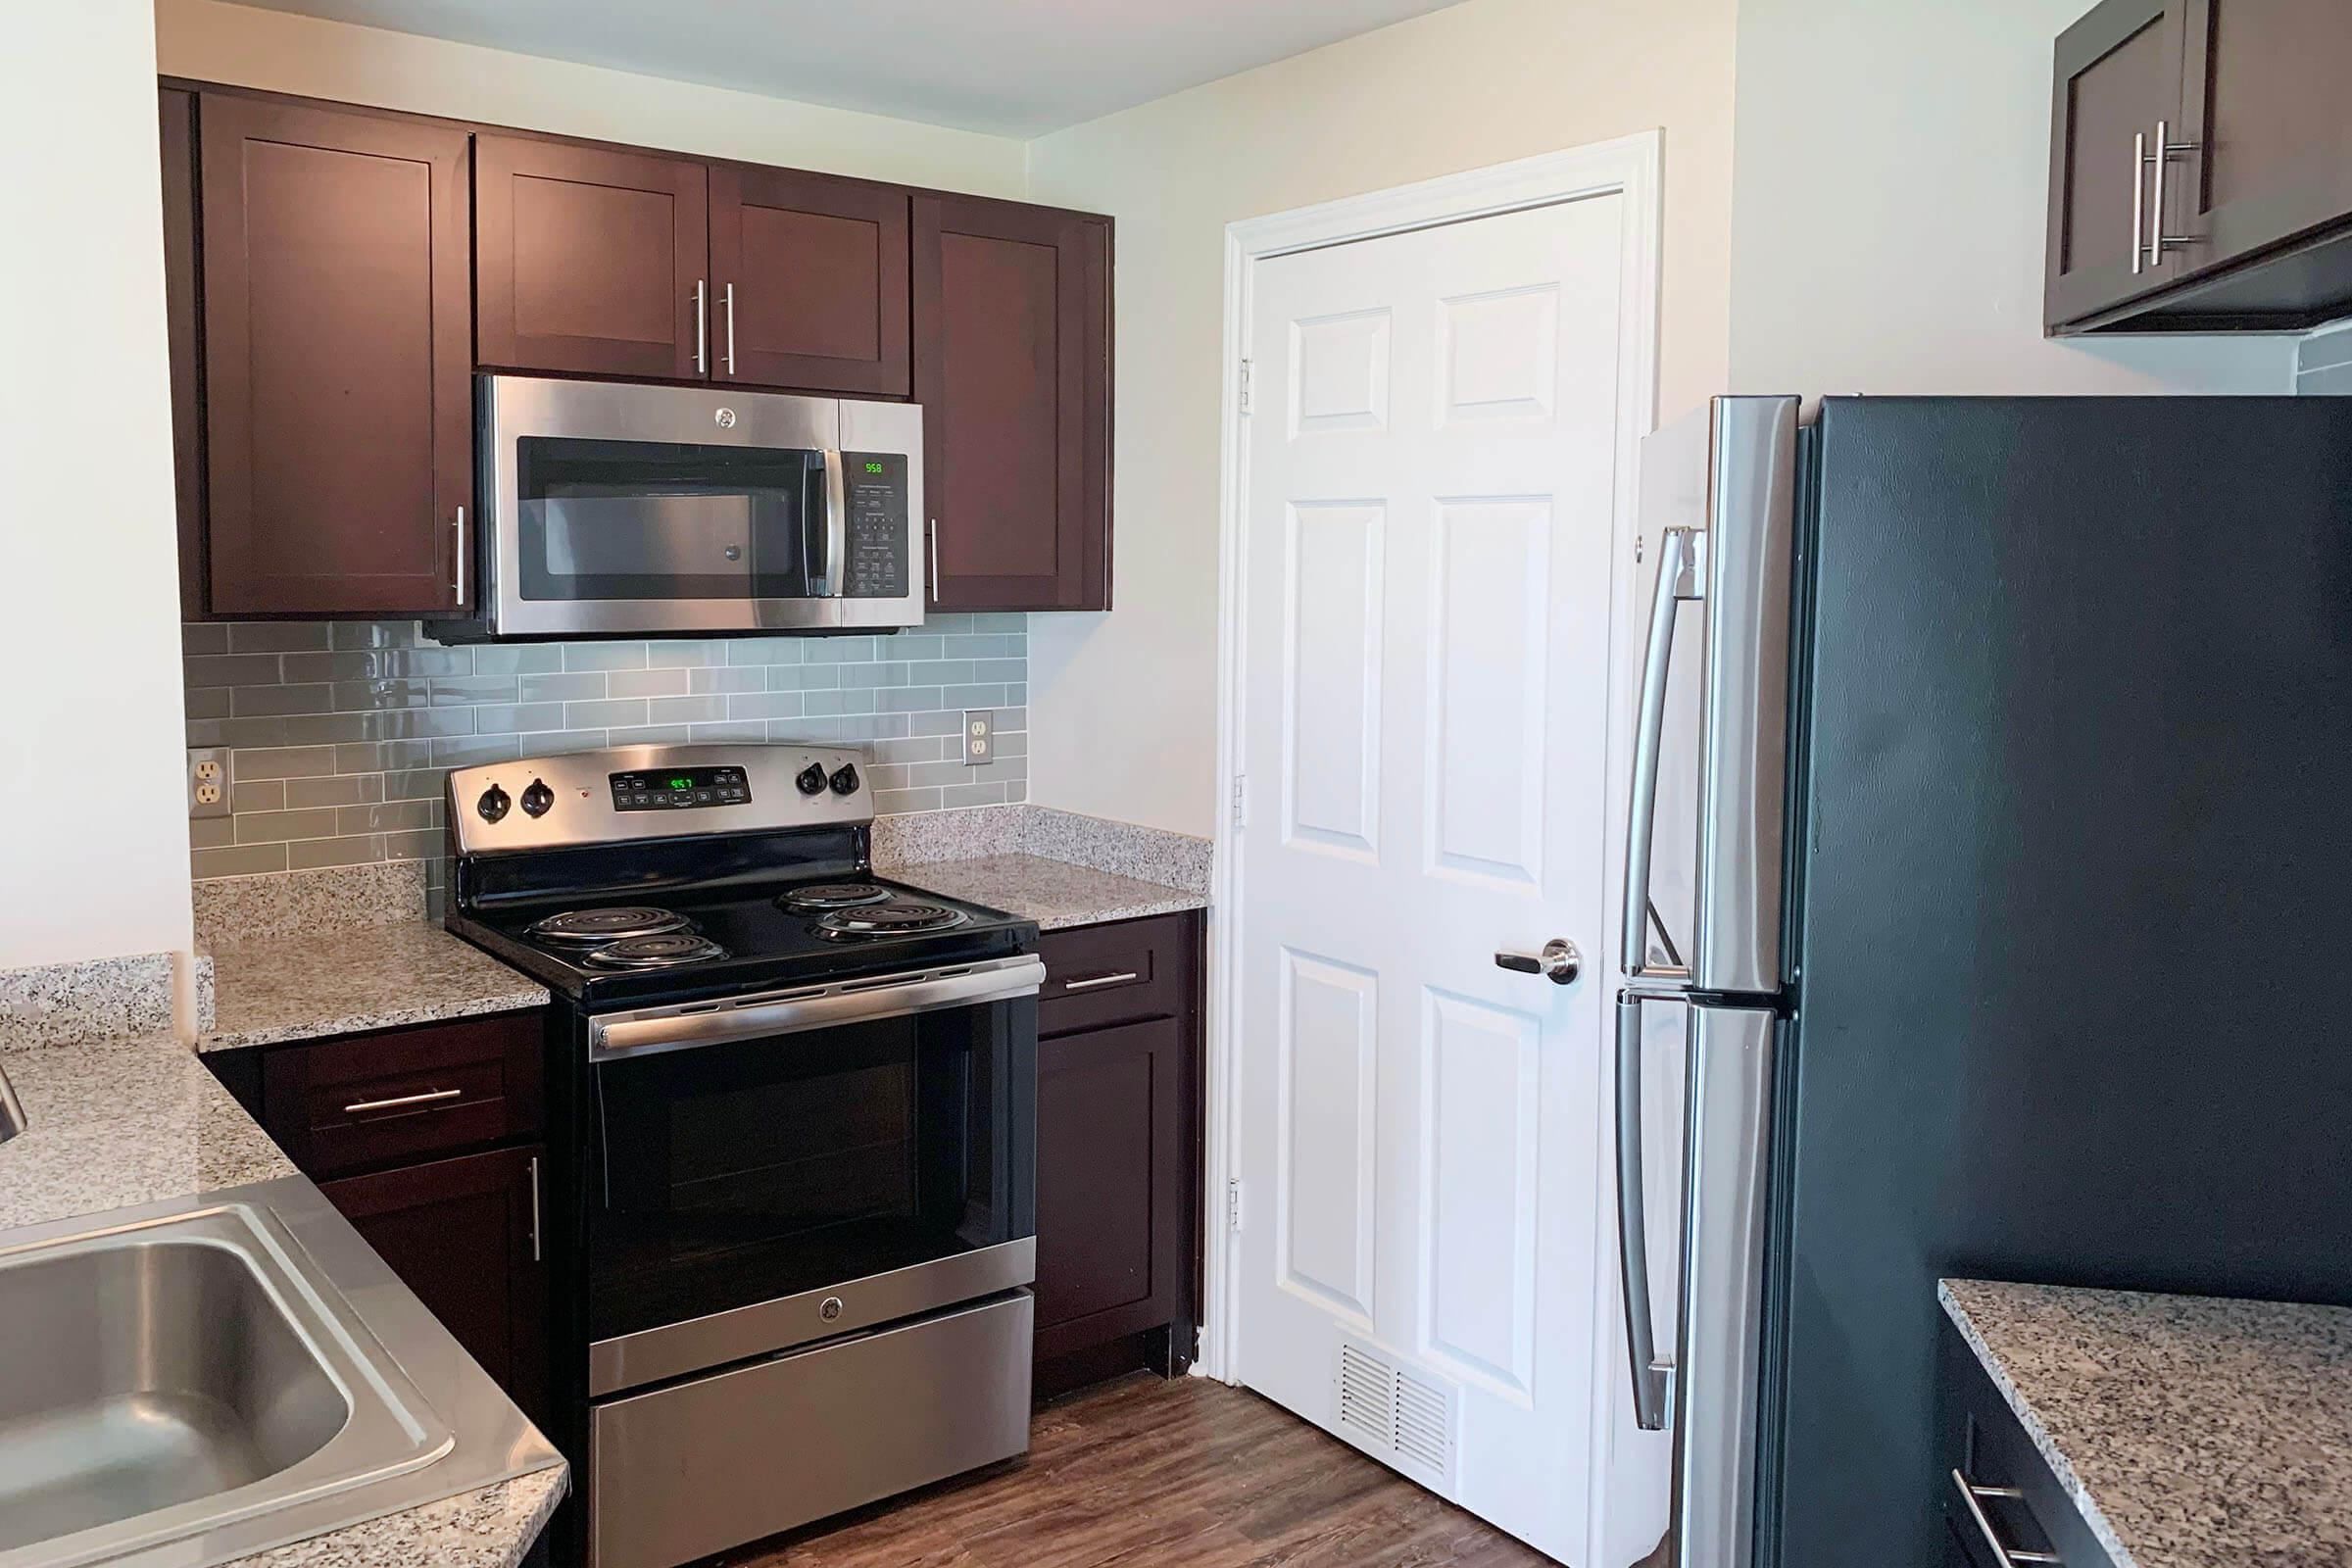 a kitchen with a stove a sink and a microwave oven on a counter